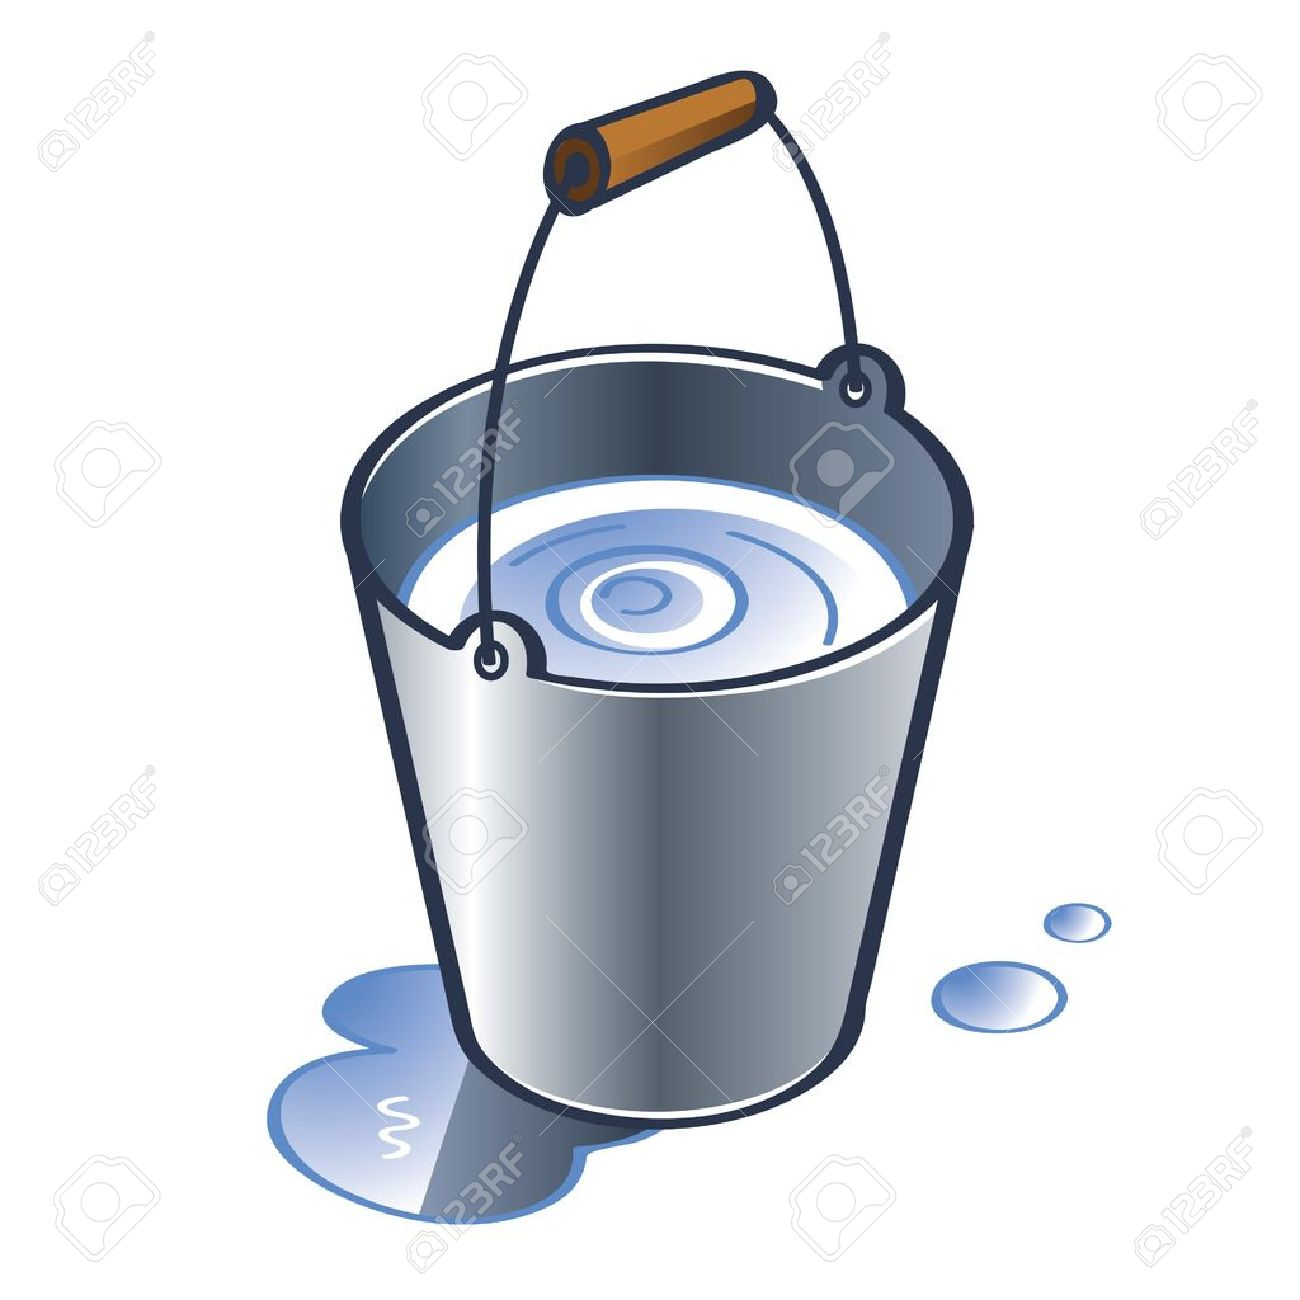 Bucket clipart balde. Water station